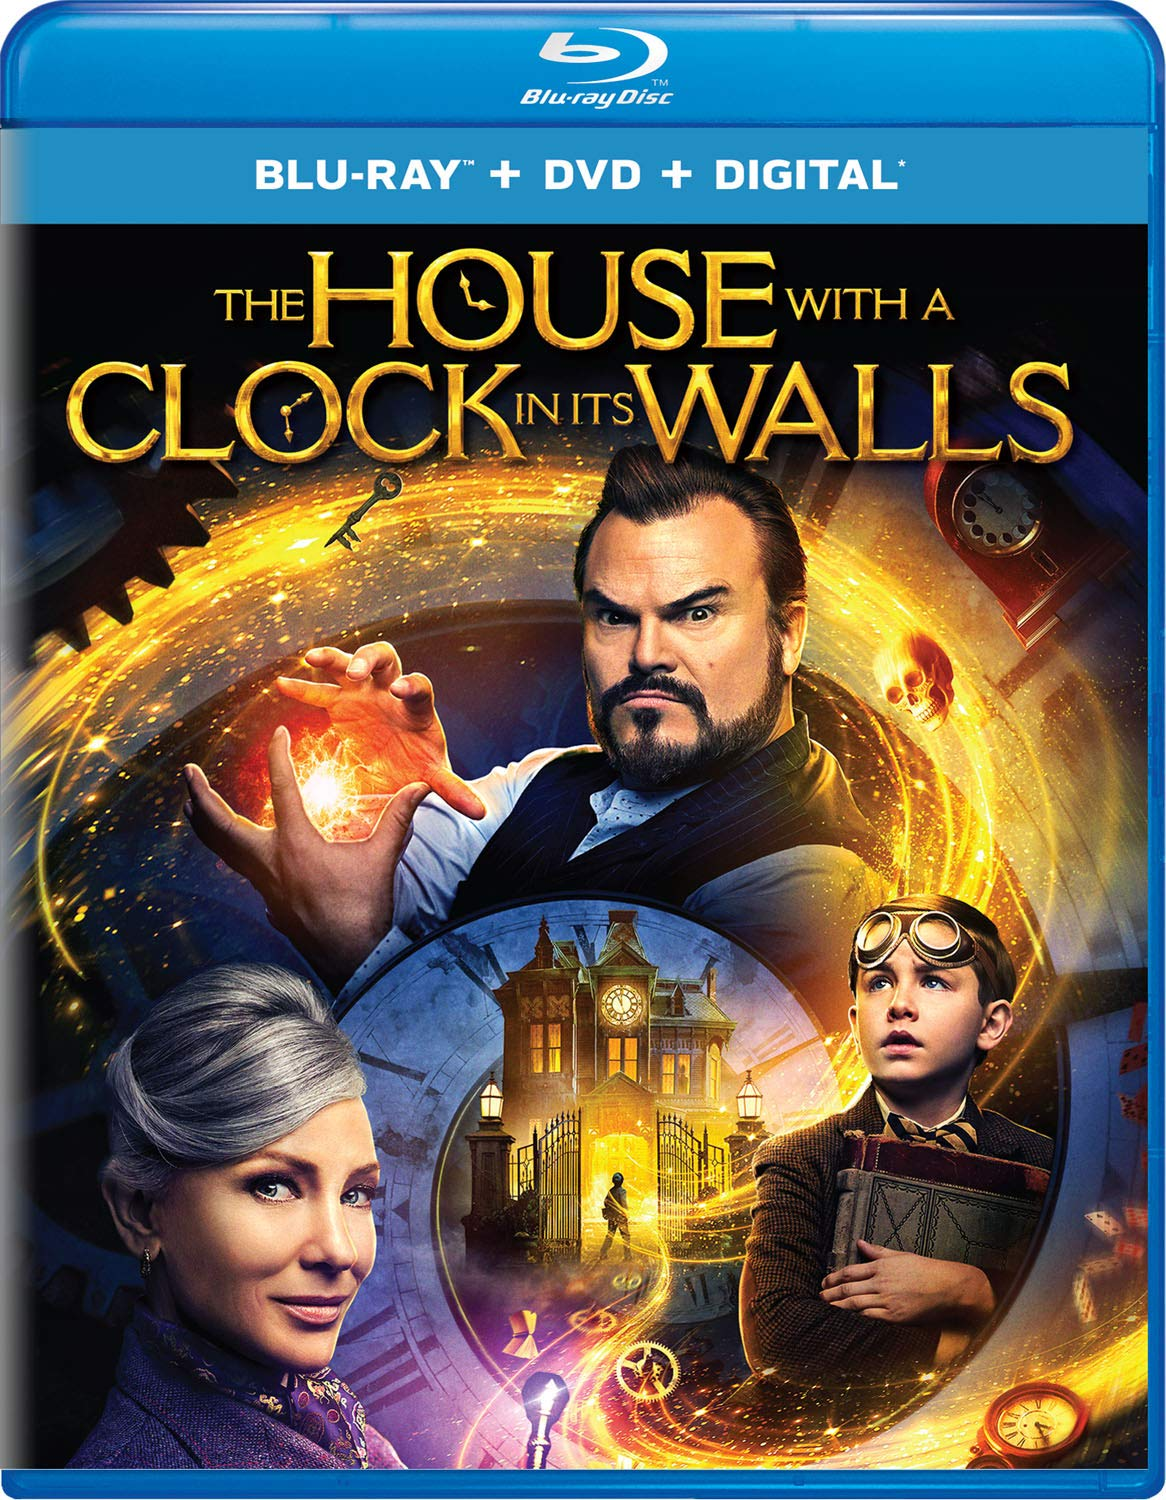 Blu-ray : The House With A Clock In Its Walls (With DVD, Digital Copy, 2 Pack)